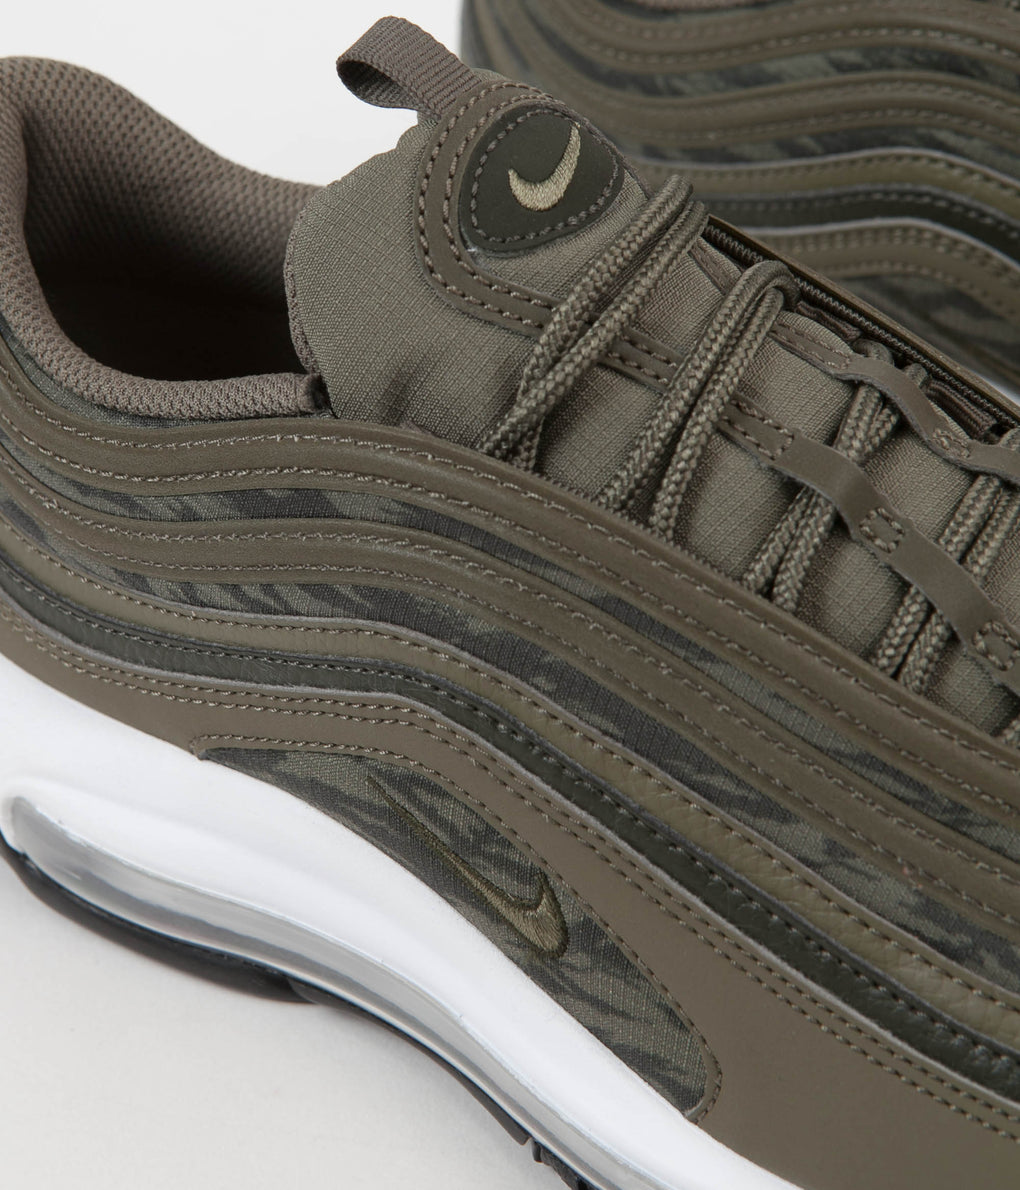 Nike Air Max 97 AOP Shoes - Medium Olive / Medium Olive - Sequoia - Black